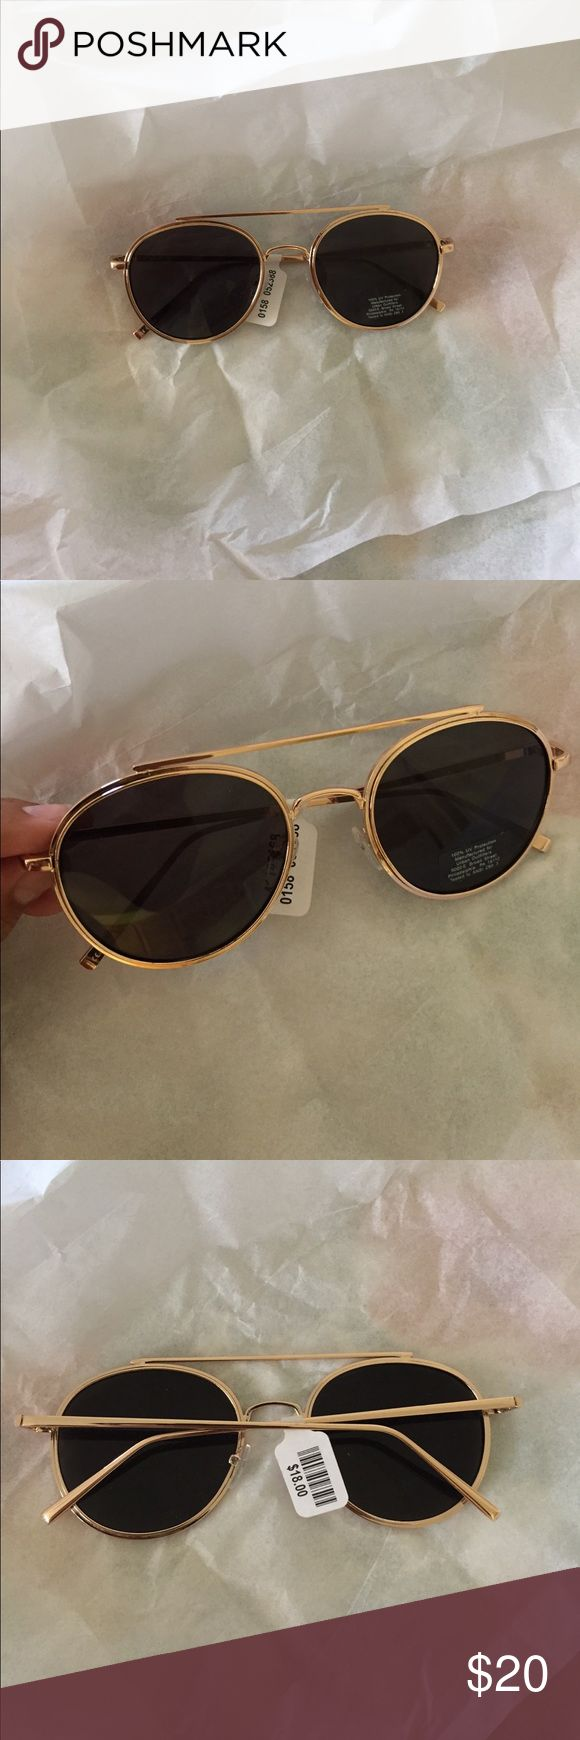 Urban Outfitters Women's circle lens sunglasses NWT Urban Outfitters Accessories Glasses